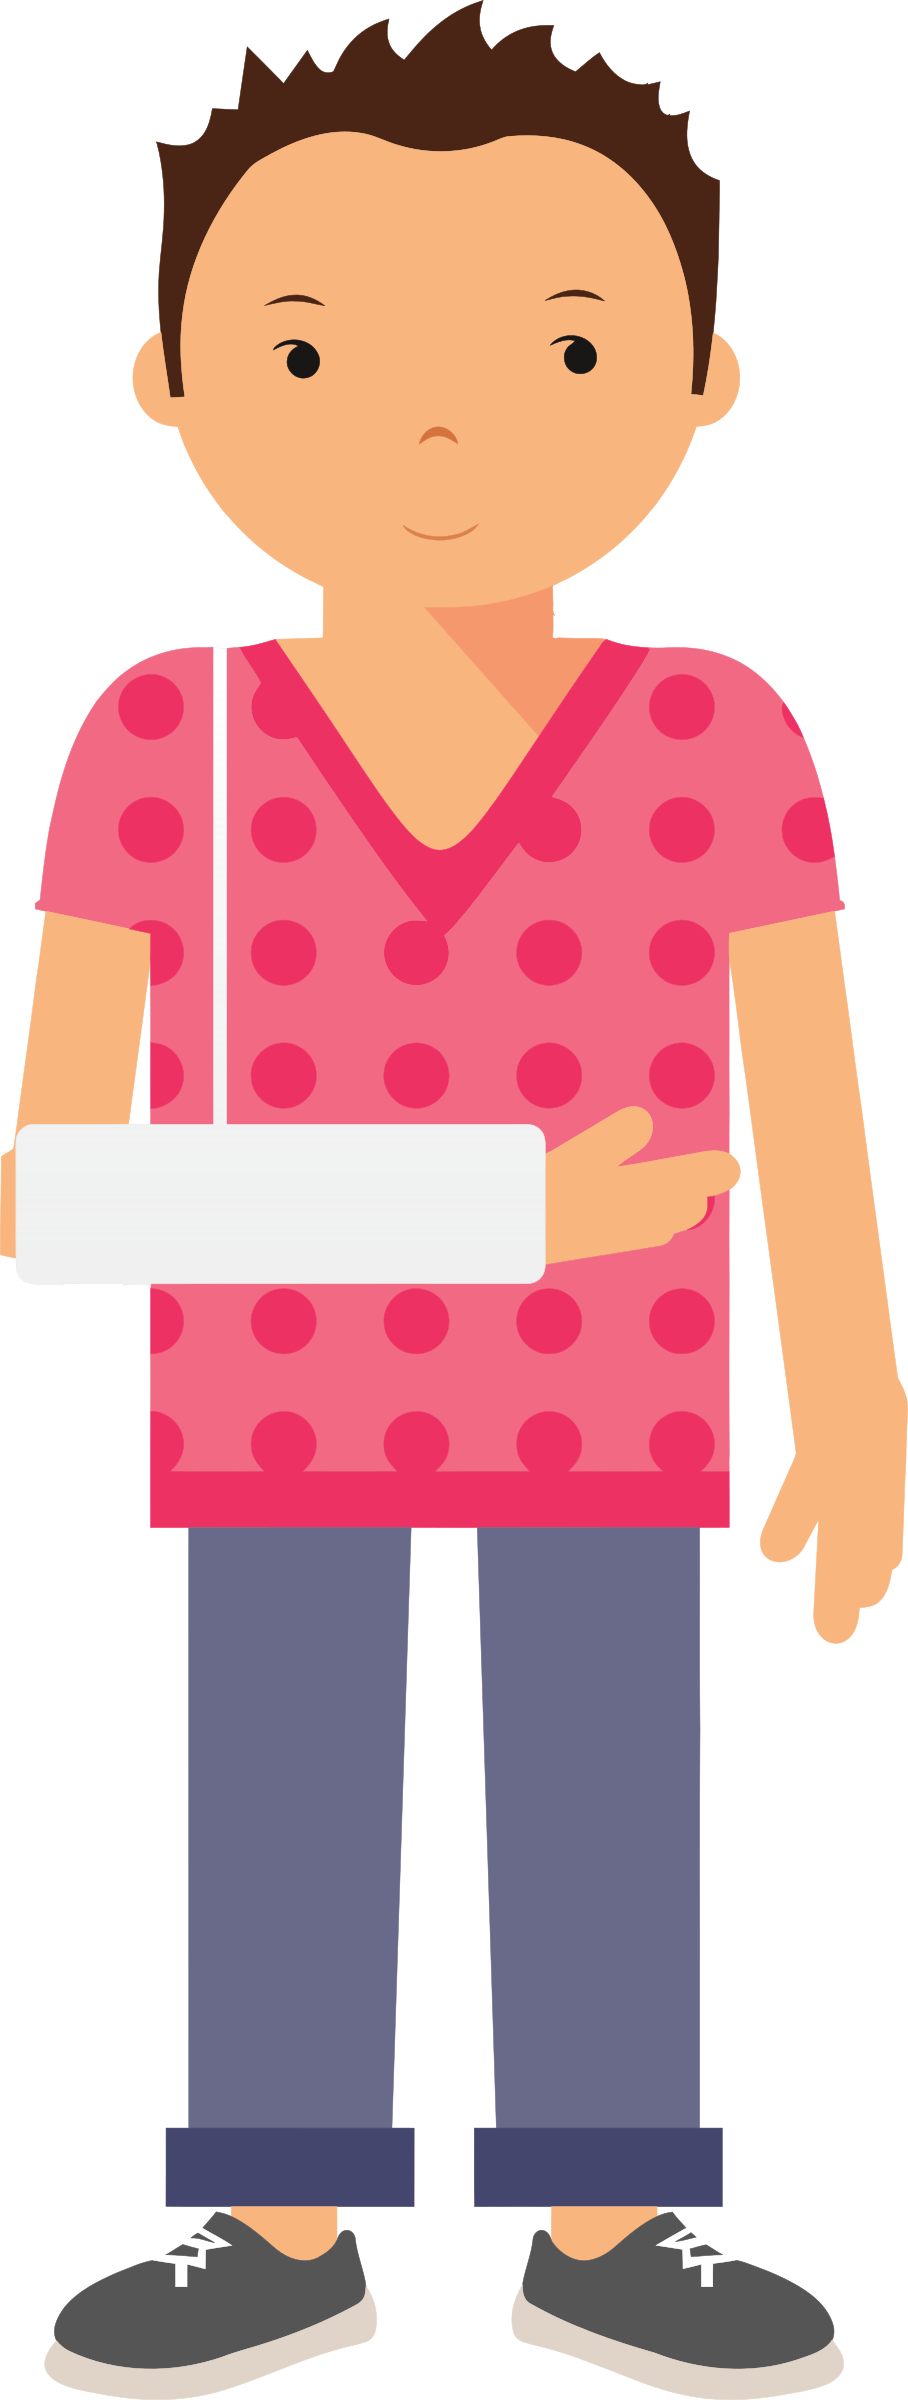 image transparent Broken arm clipart. Patient with no background